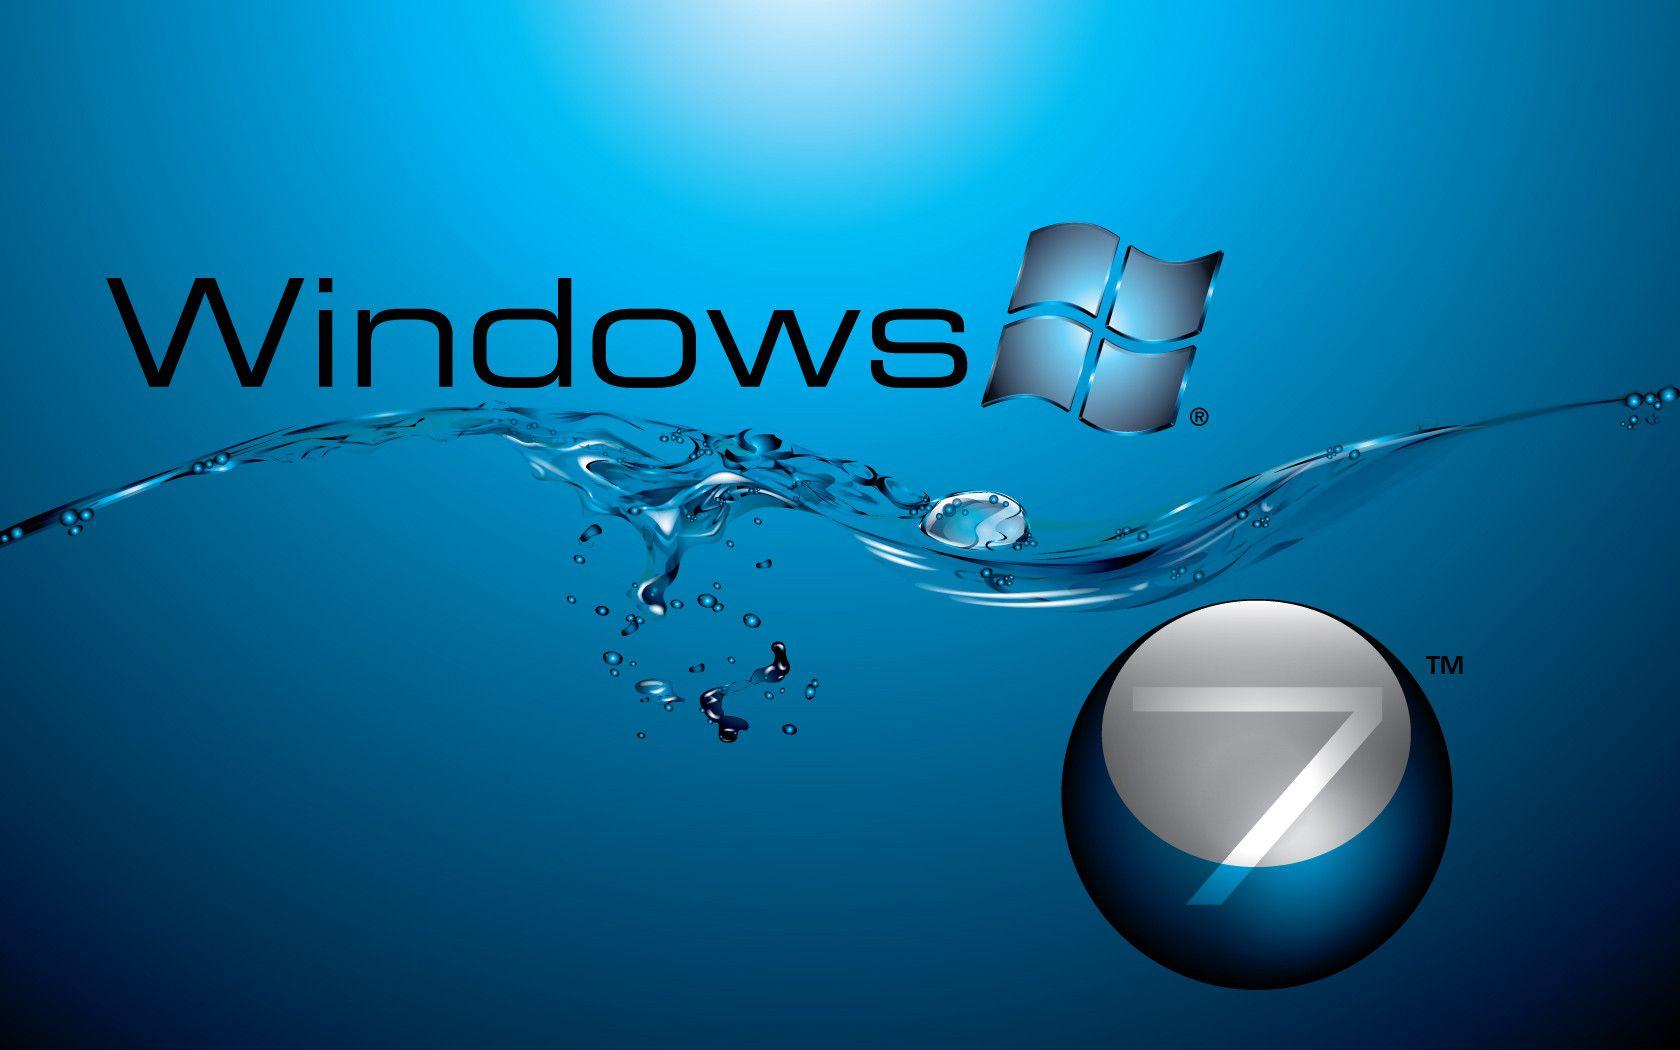 Wallpaper downloader for windows 7 - Windows 7 In Water Flow Wallpapers Hd Wallpapers